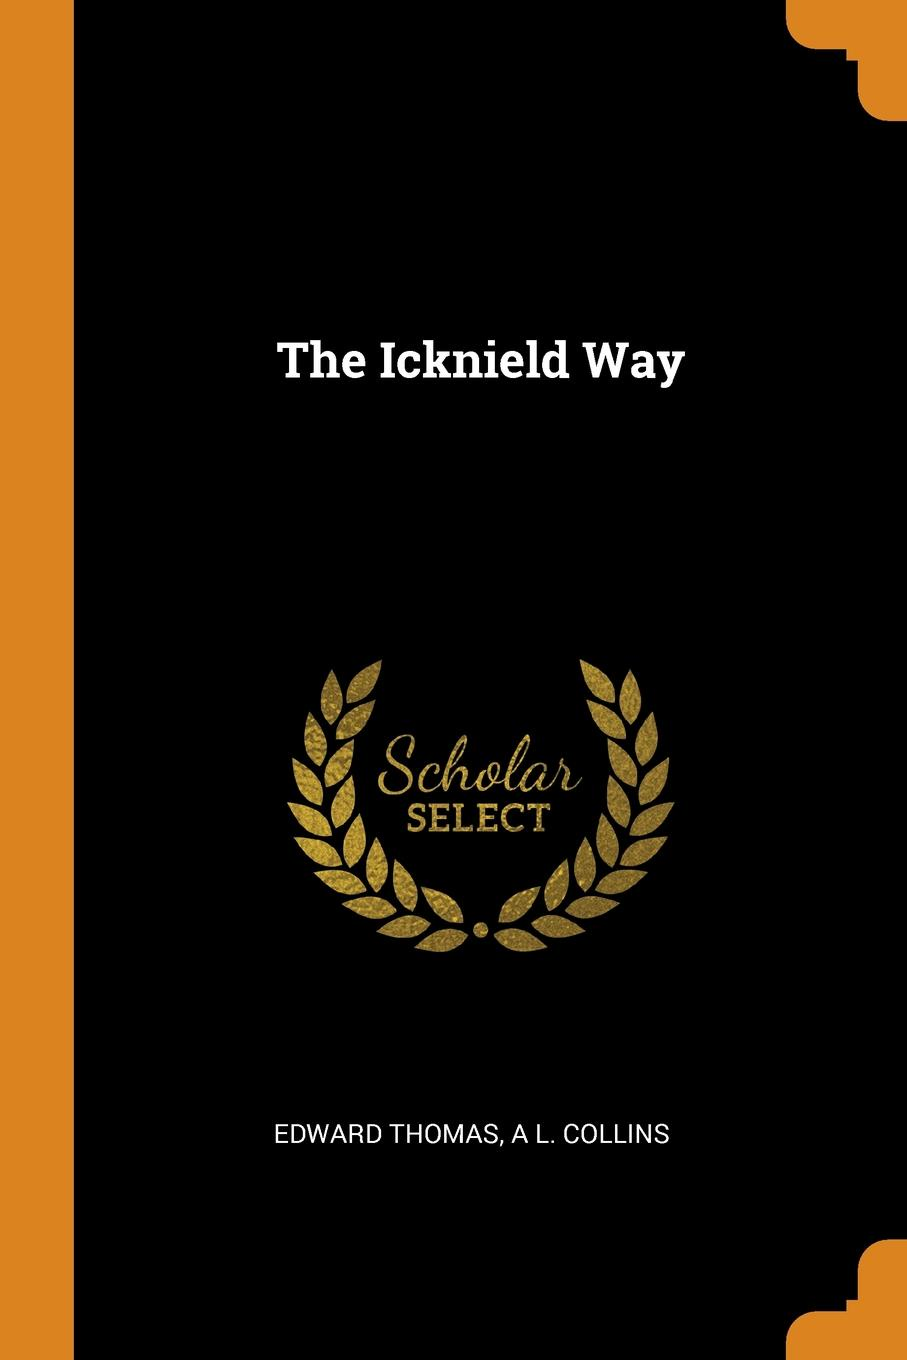 Edward Thomas, A L. Collins The Icknield Way